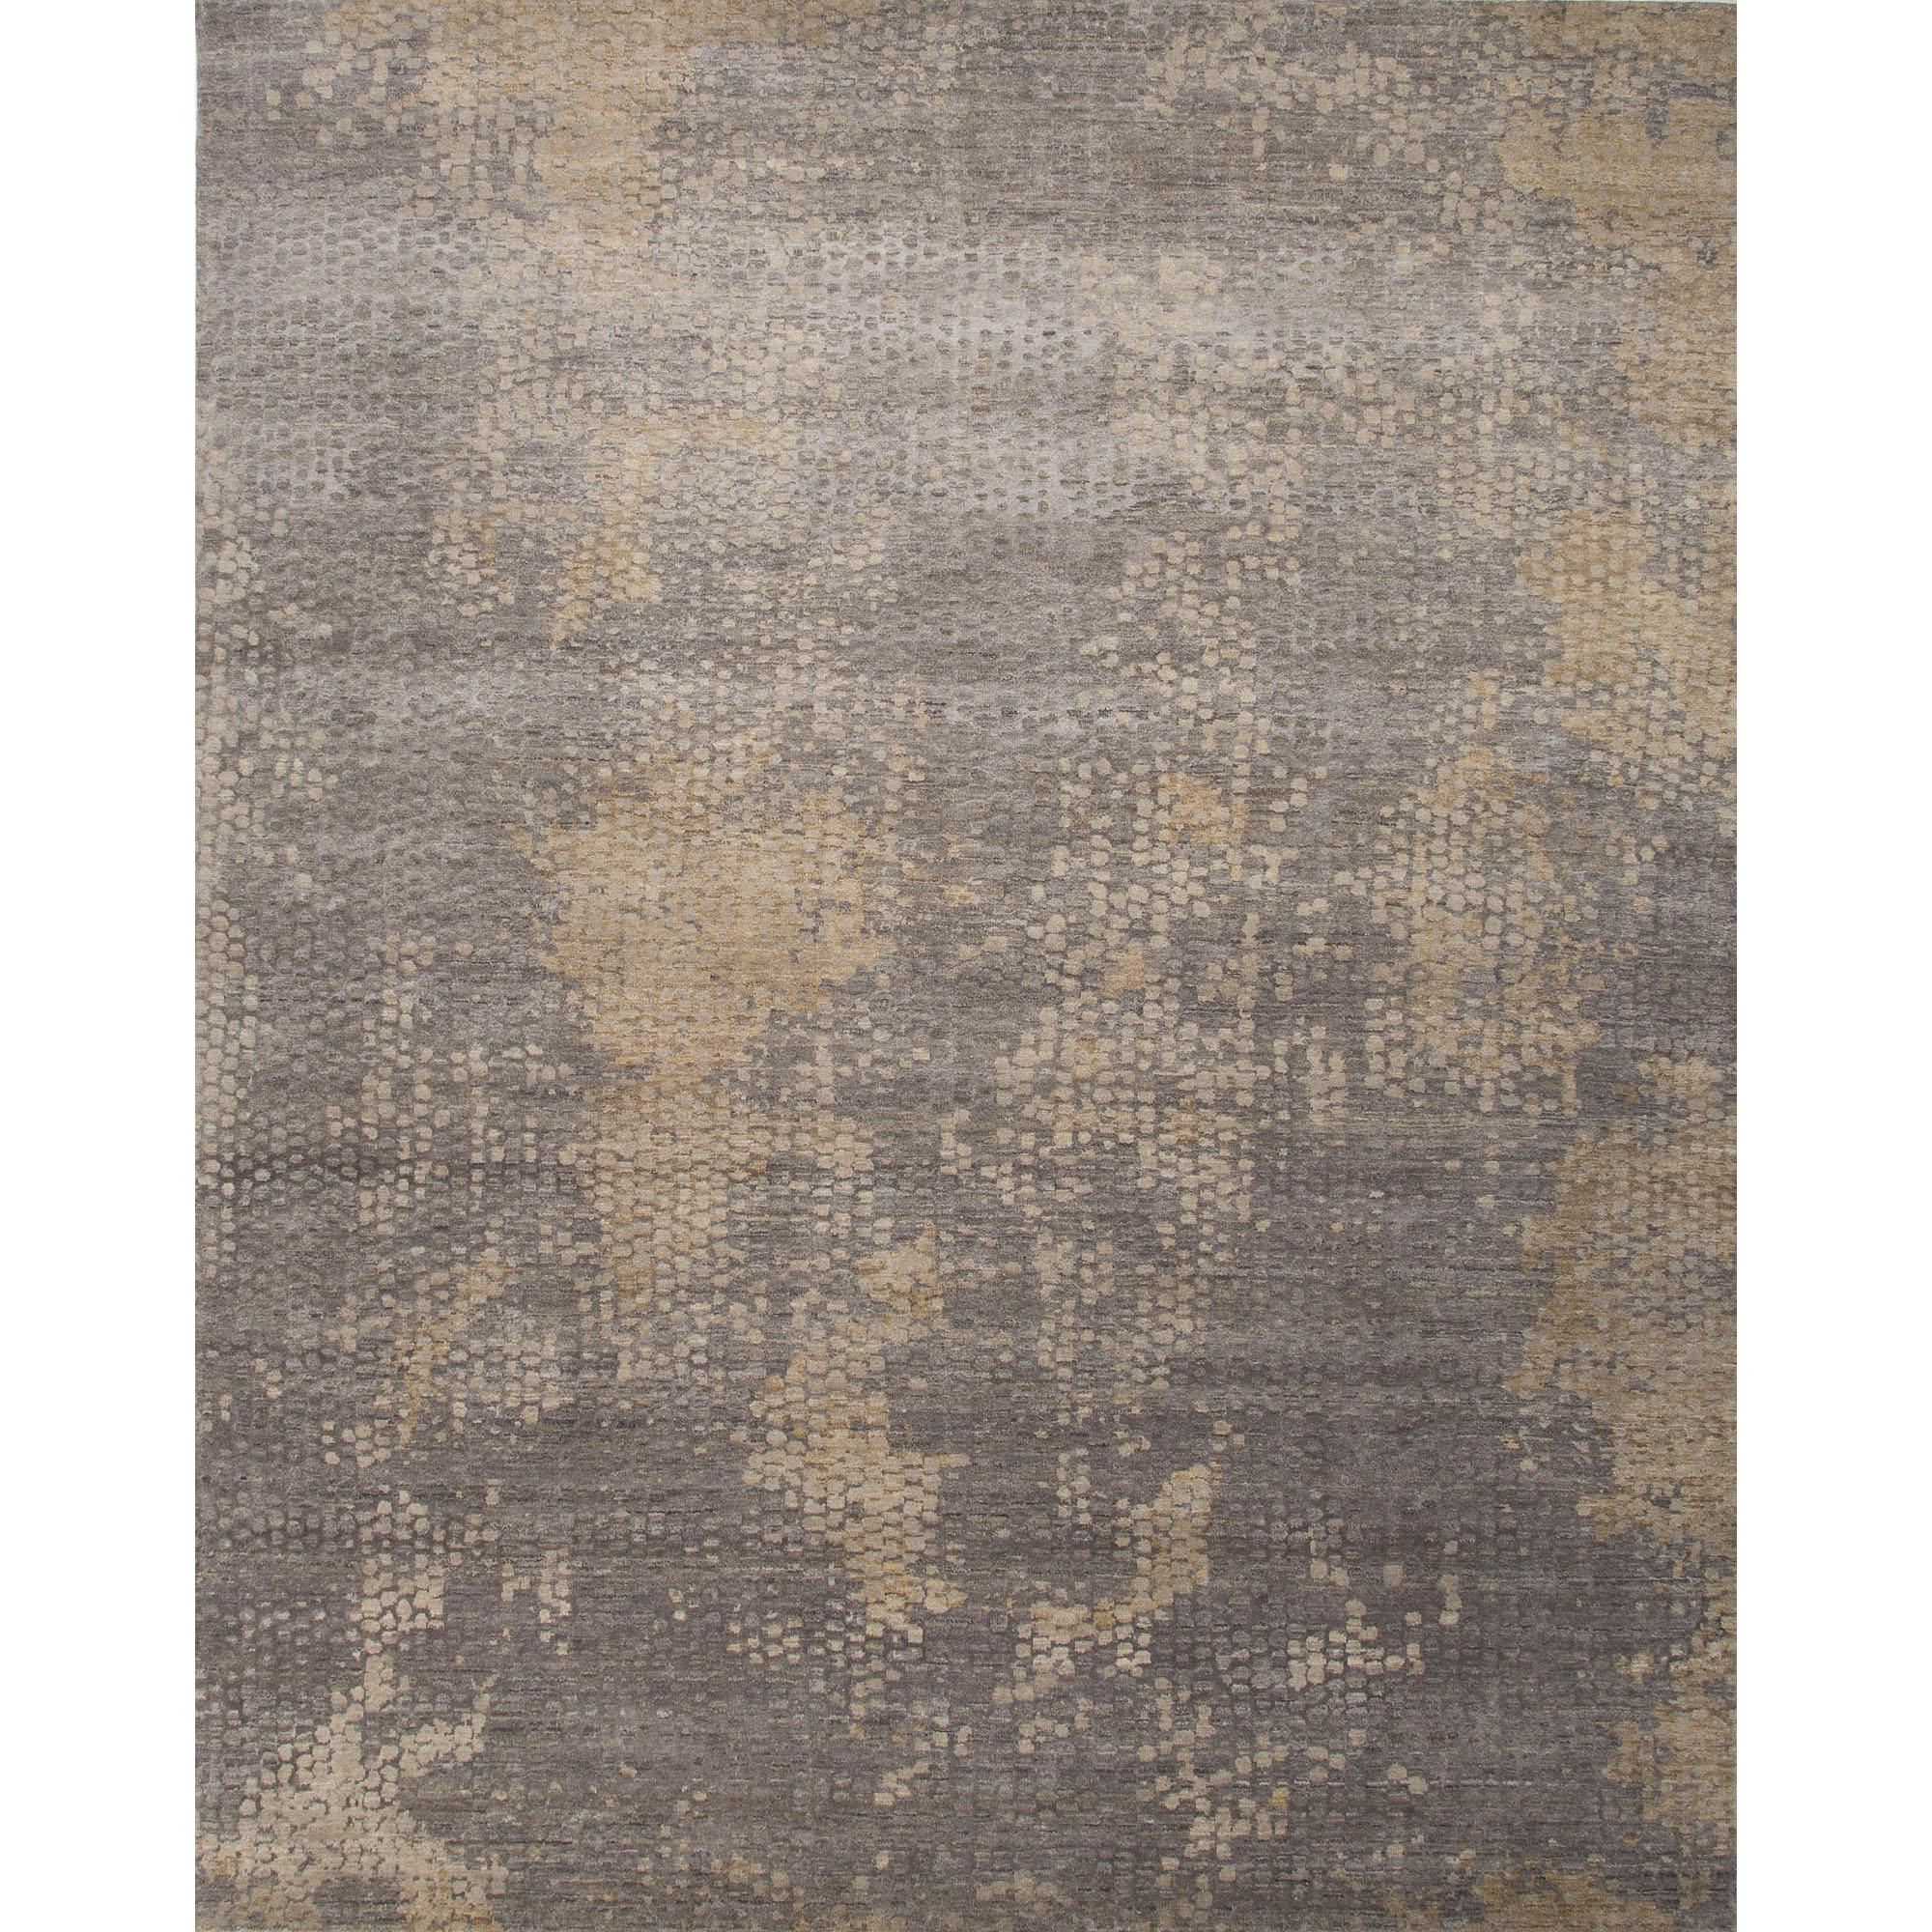 JAIPUR Rugs Chaos Theory By Kavi 9 x 12 Rug - Item Number: RUG116984